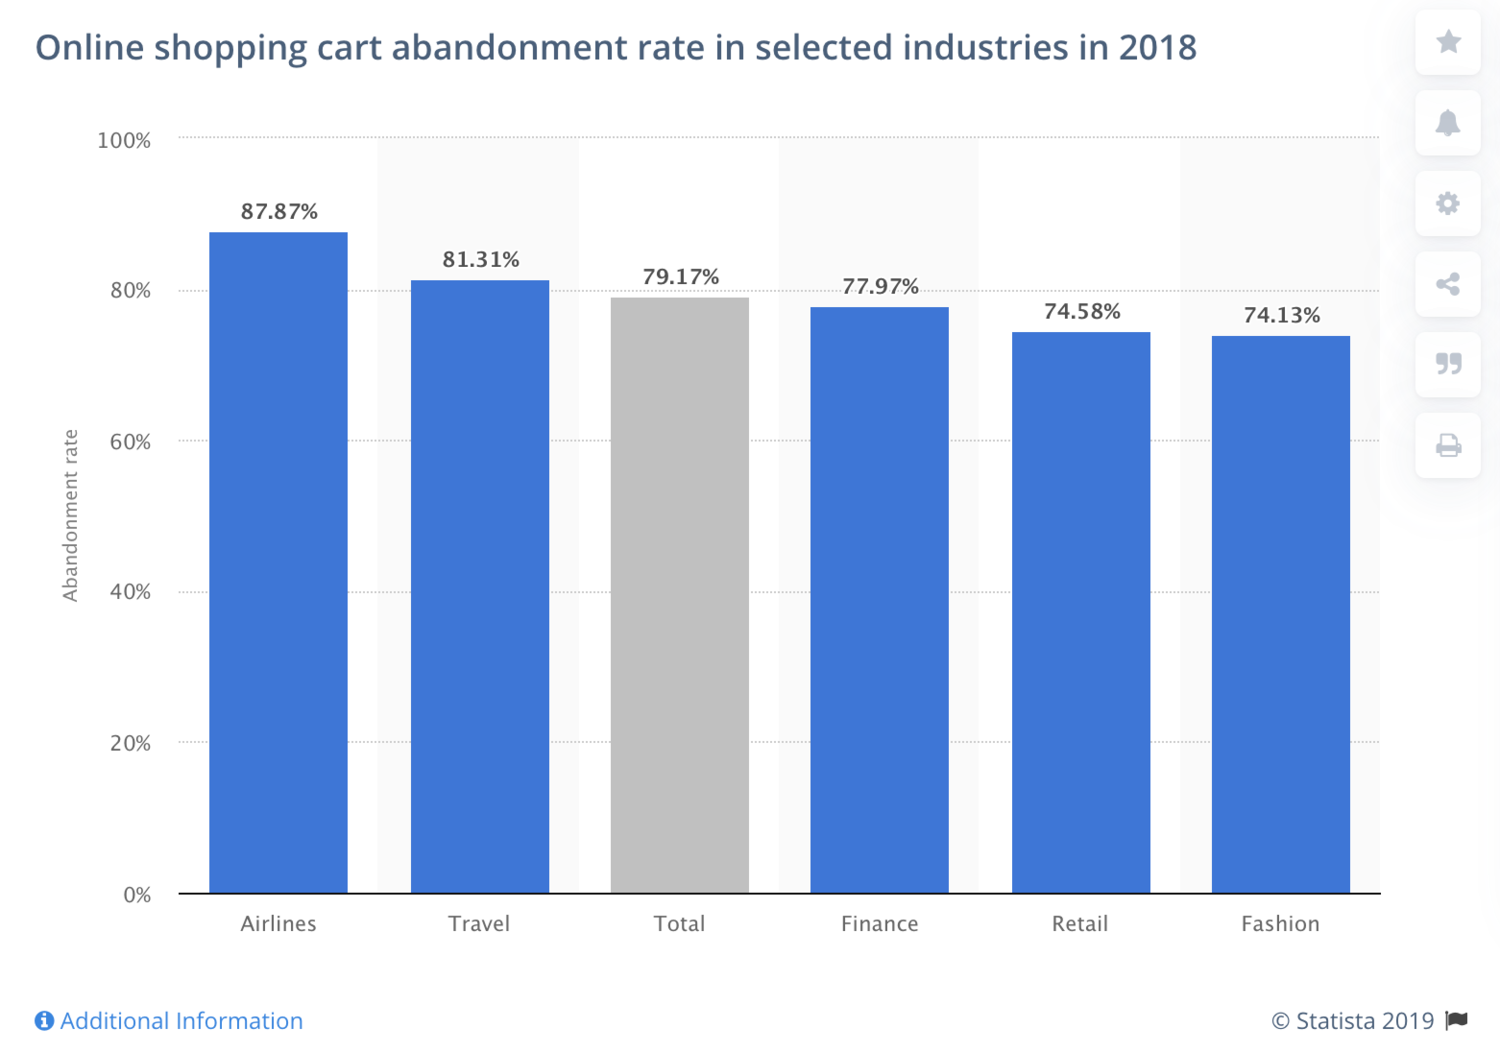 Online shopping cart abandonment rate by industry